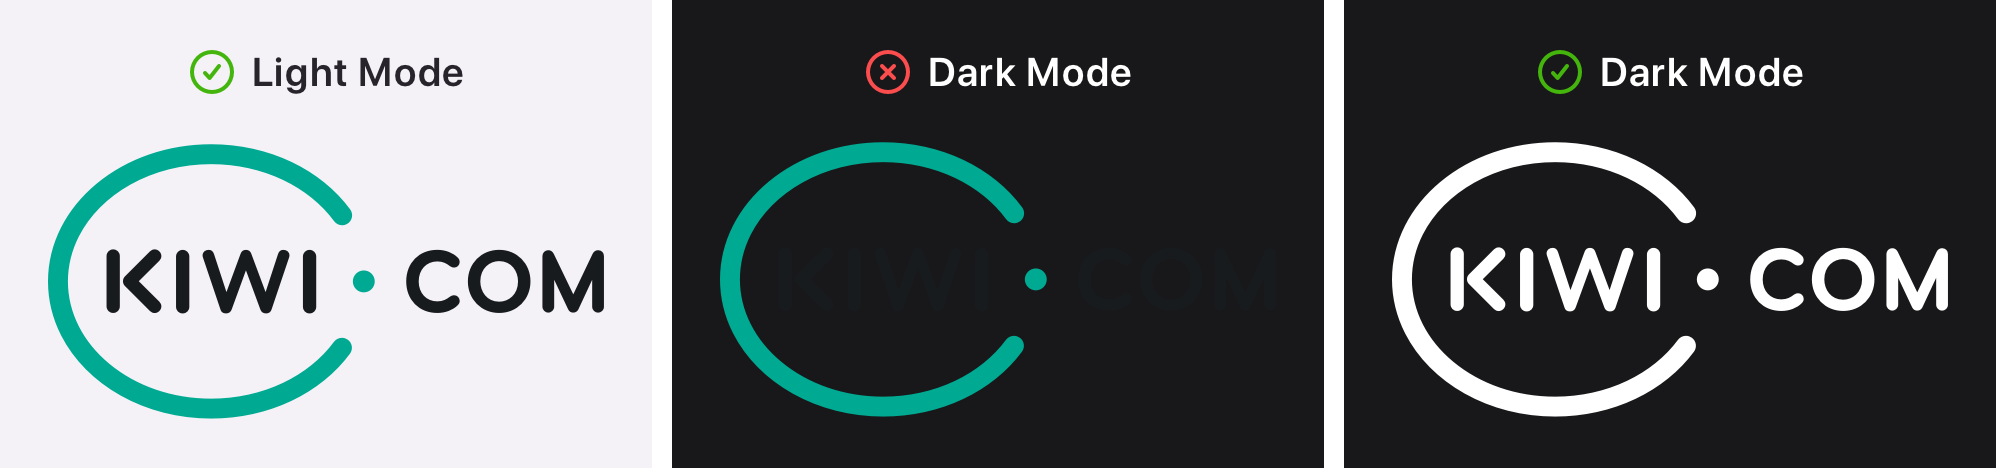 turn the lights off designing for dark mode by briandito priambodo ux collective designing for dark mode